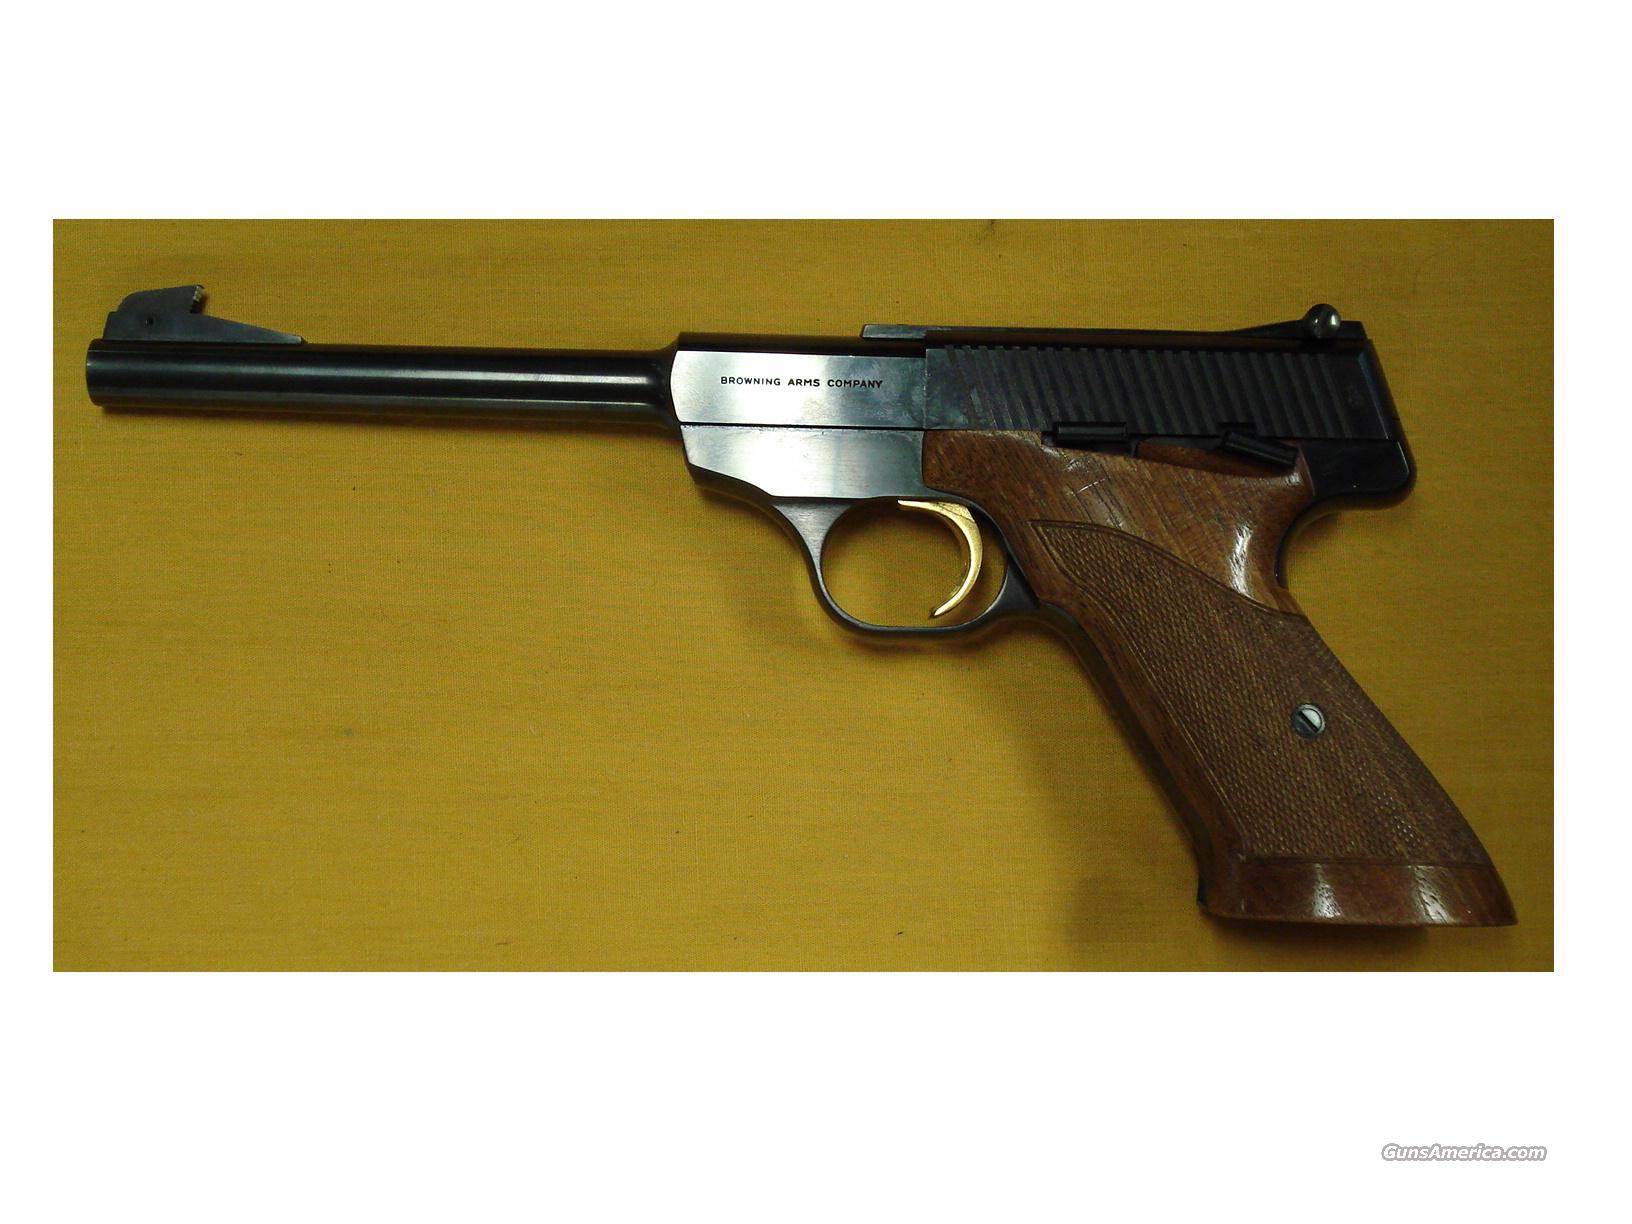 "BROWNING CHALENGER .22LR 6 3/4"" BARREL  Guns > Pistols > Browning Pistols > Other Autos"